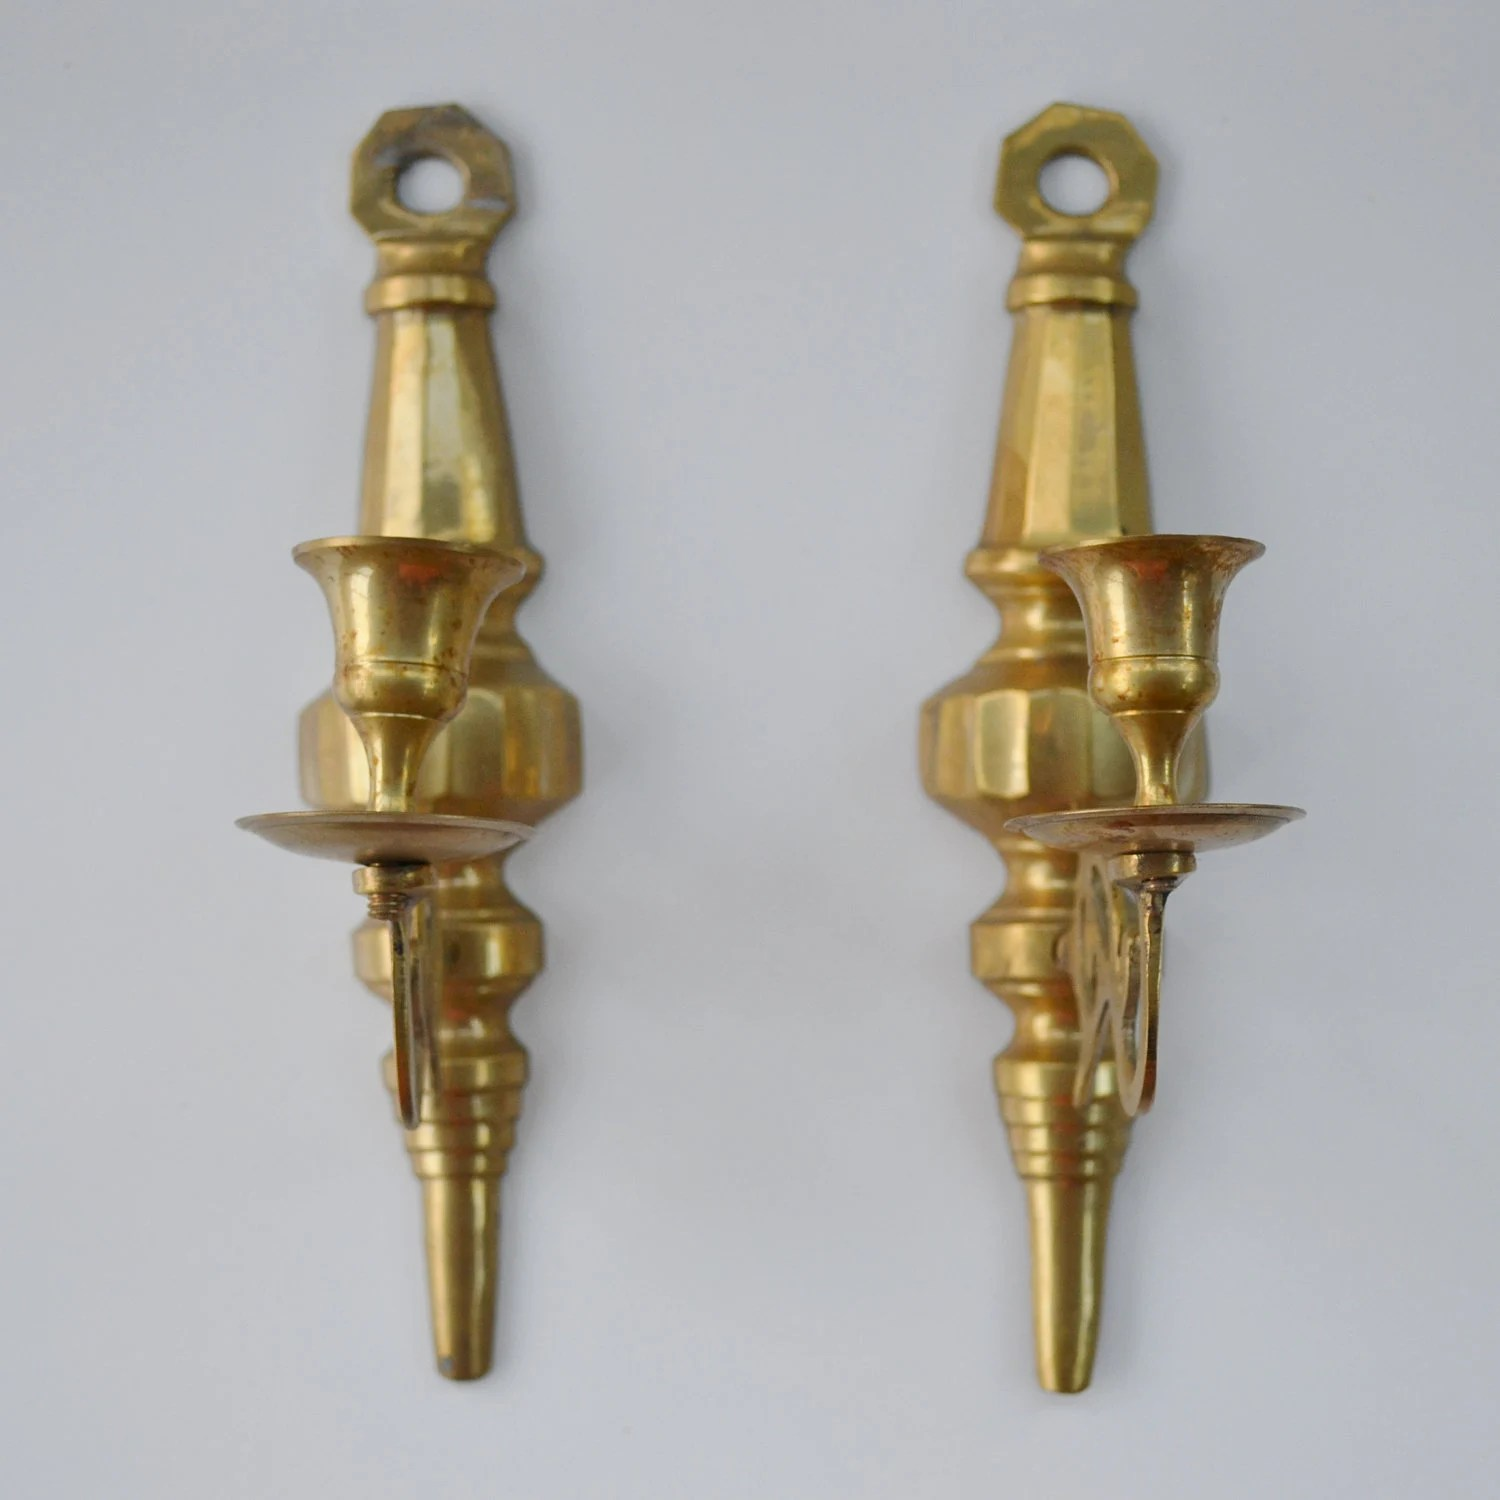 Vintage Pair of Brass Wall Sconces Candle Holders Candelabra on Wall Sconces Candle Holders id=78893